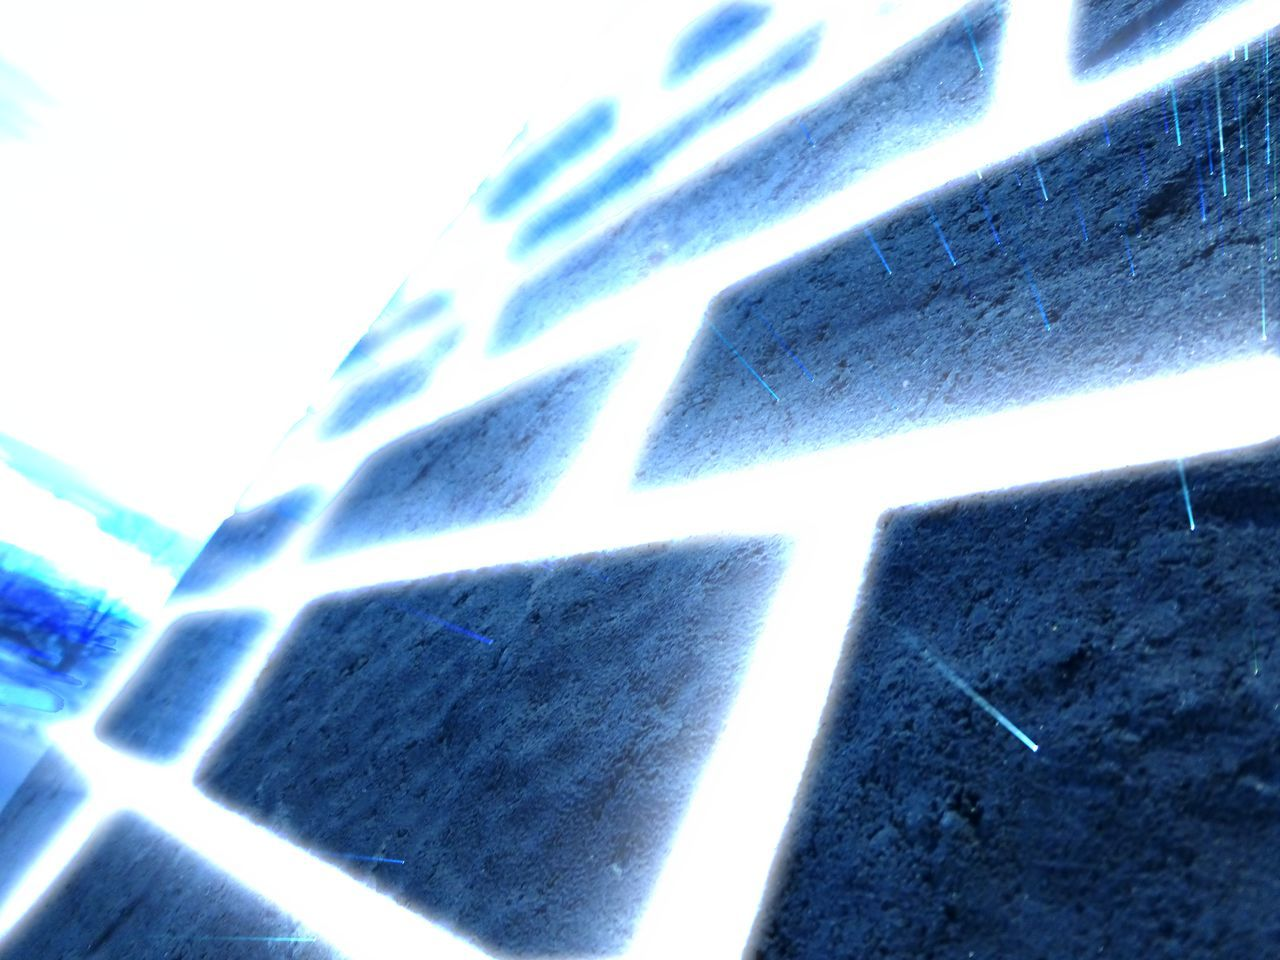 Bricks Wall Light Special Effects Aftereffects Adobe